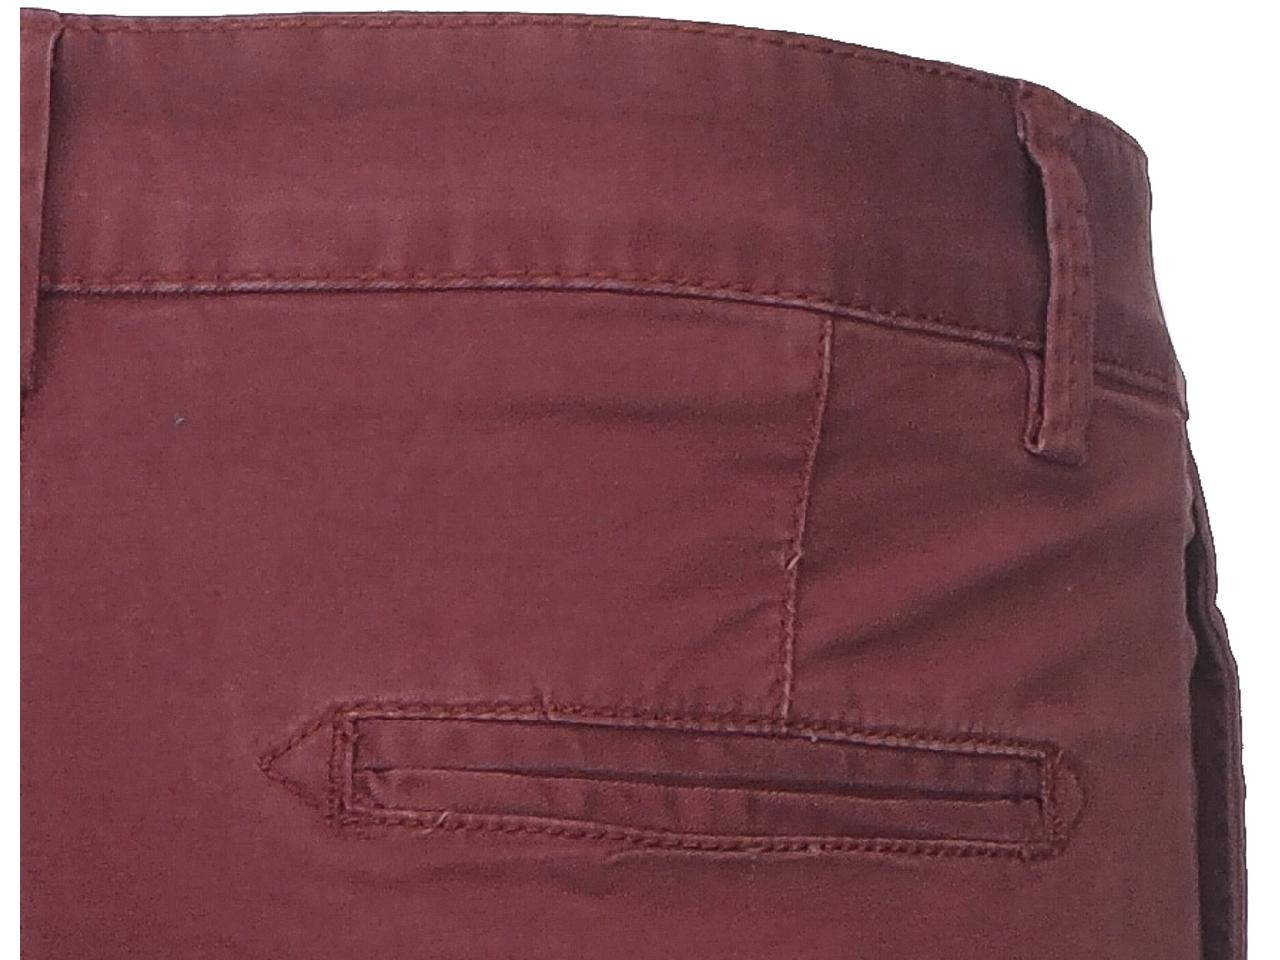 Pantalon-Crossby-Chino-bordeaux-pant-Rouge-44066-Neuf miniature 4